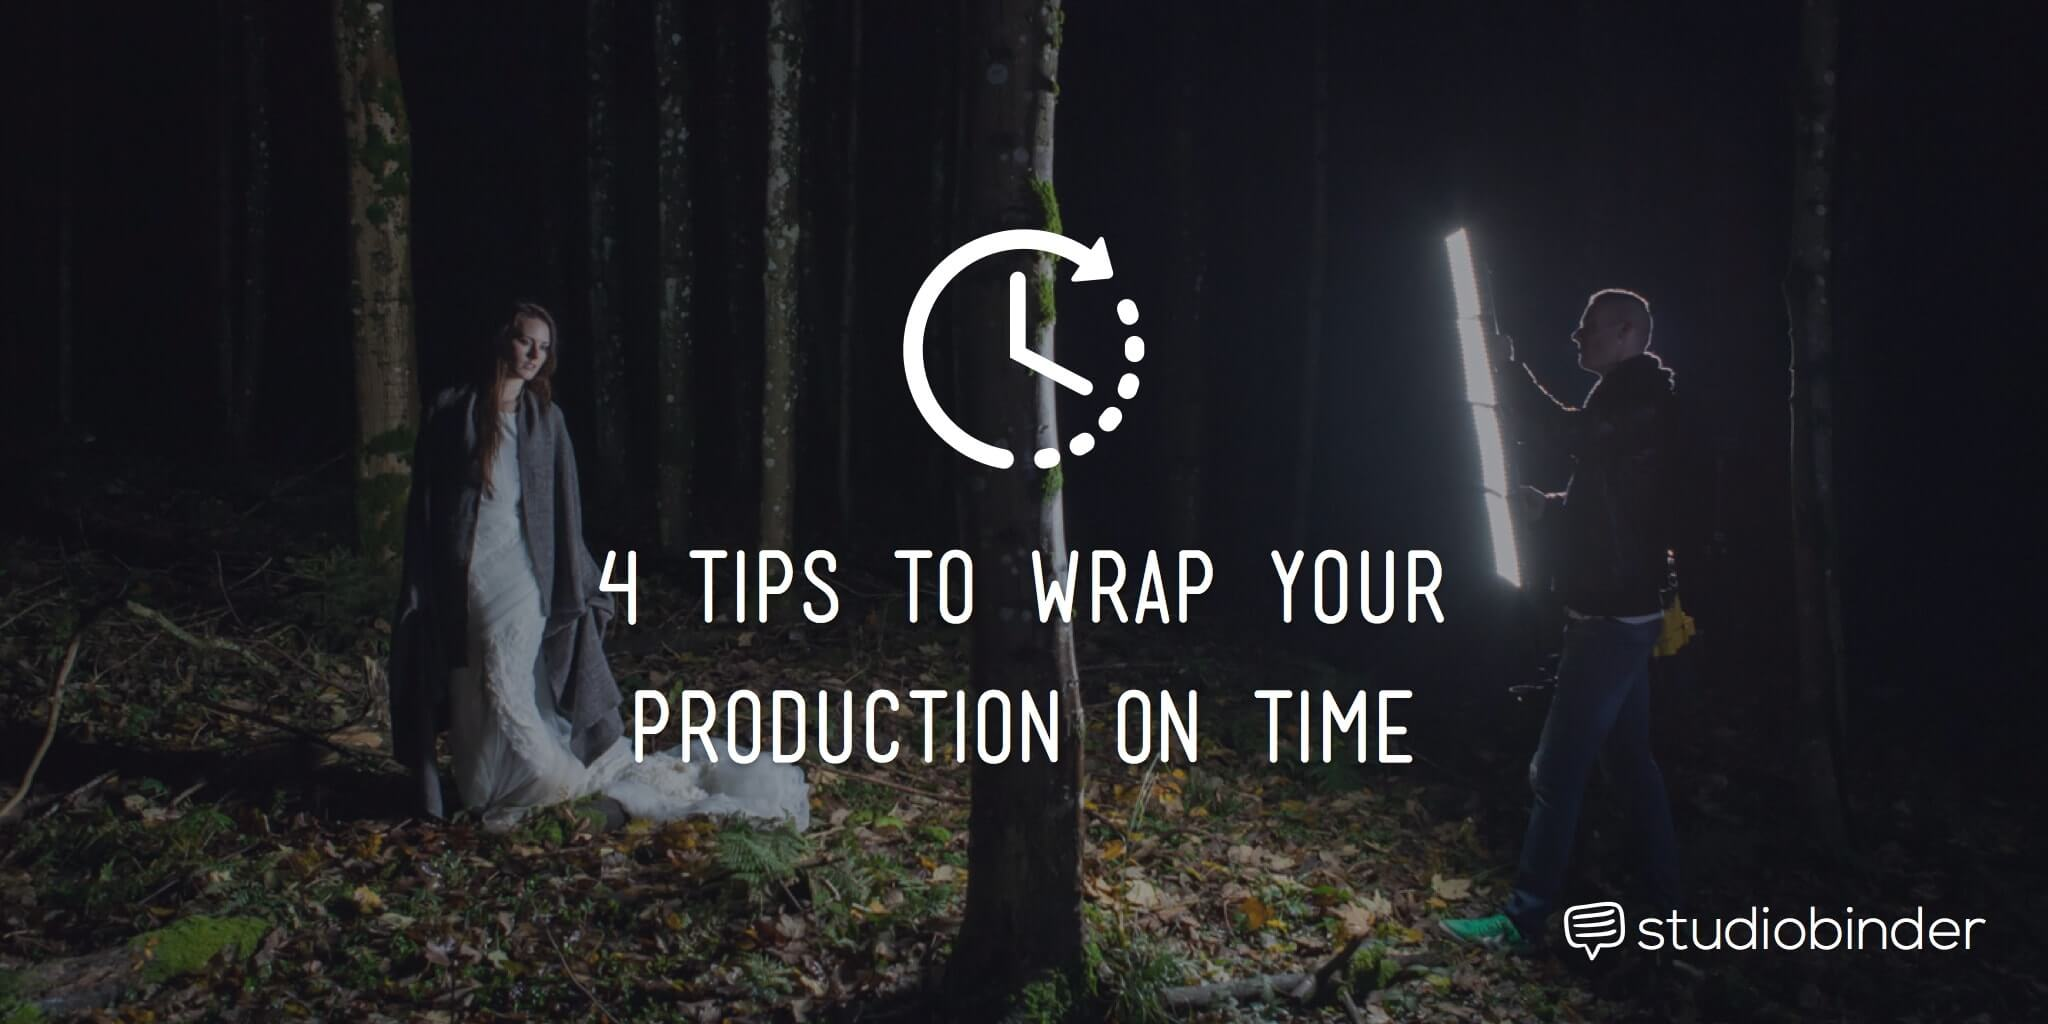 4-tips-to-wrap-your-production-on-time